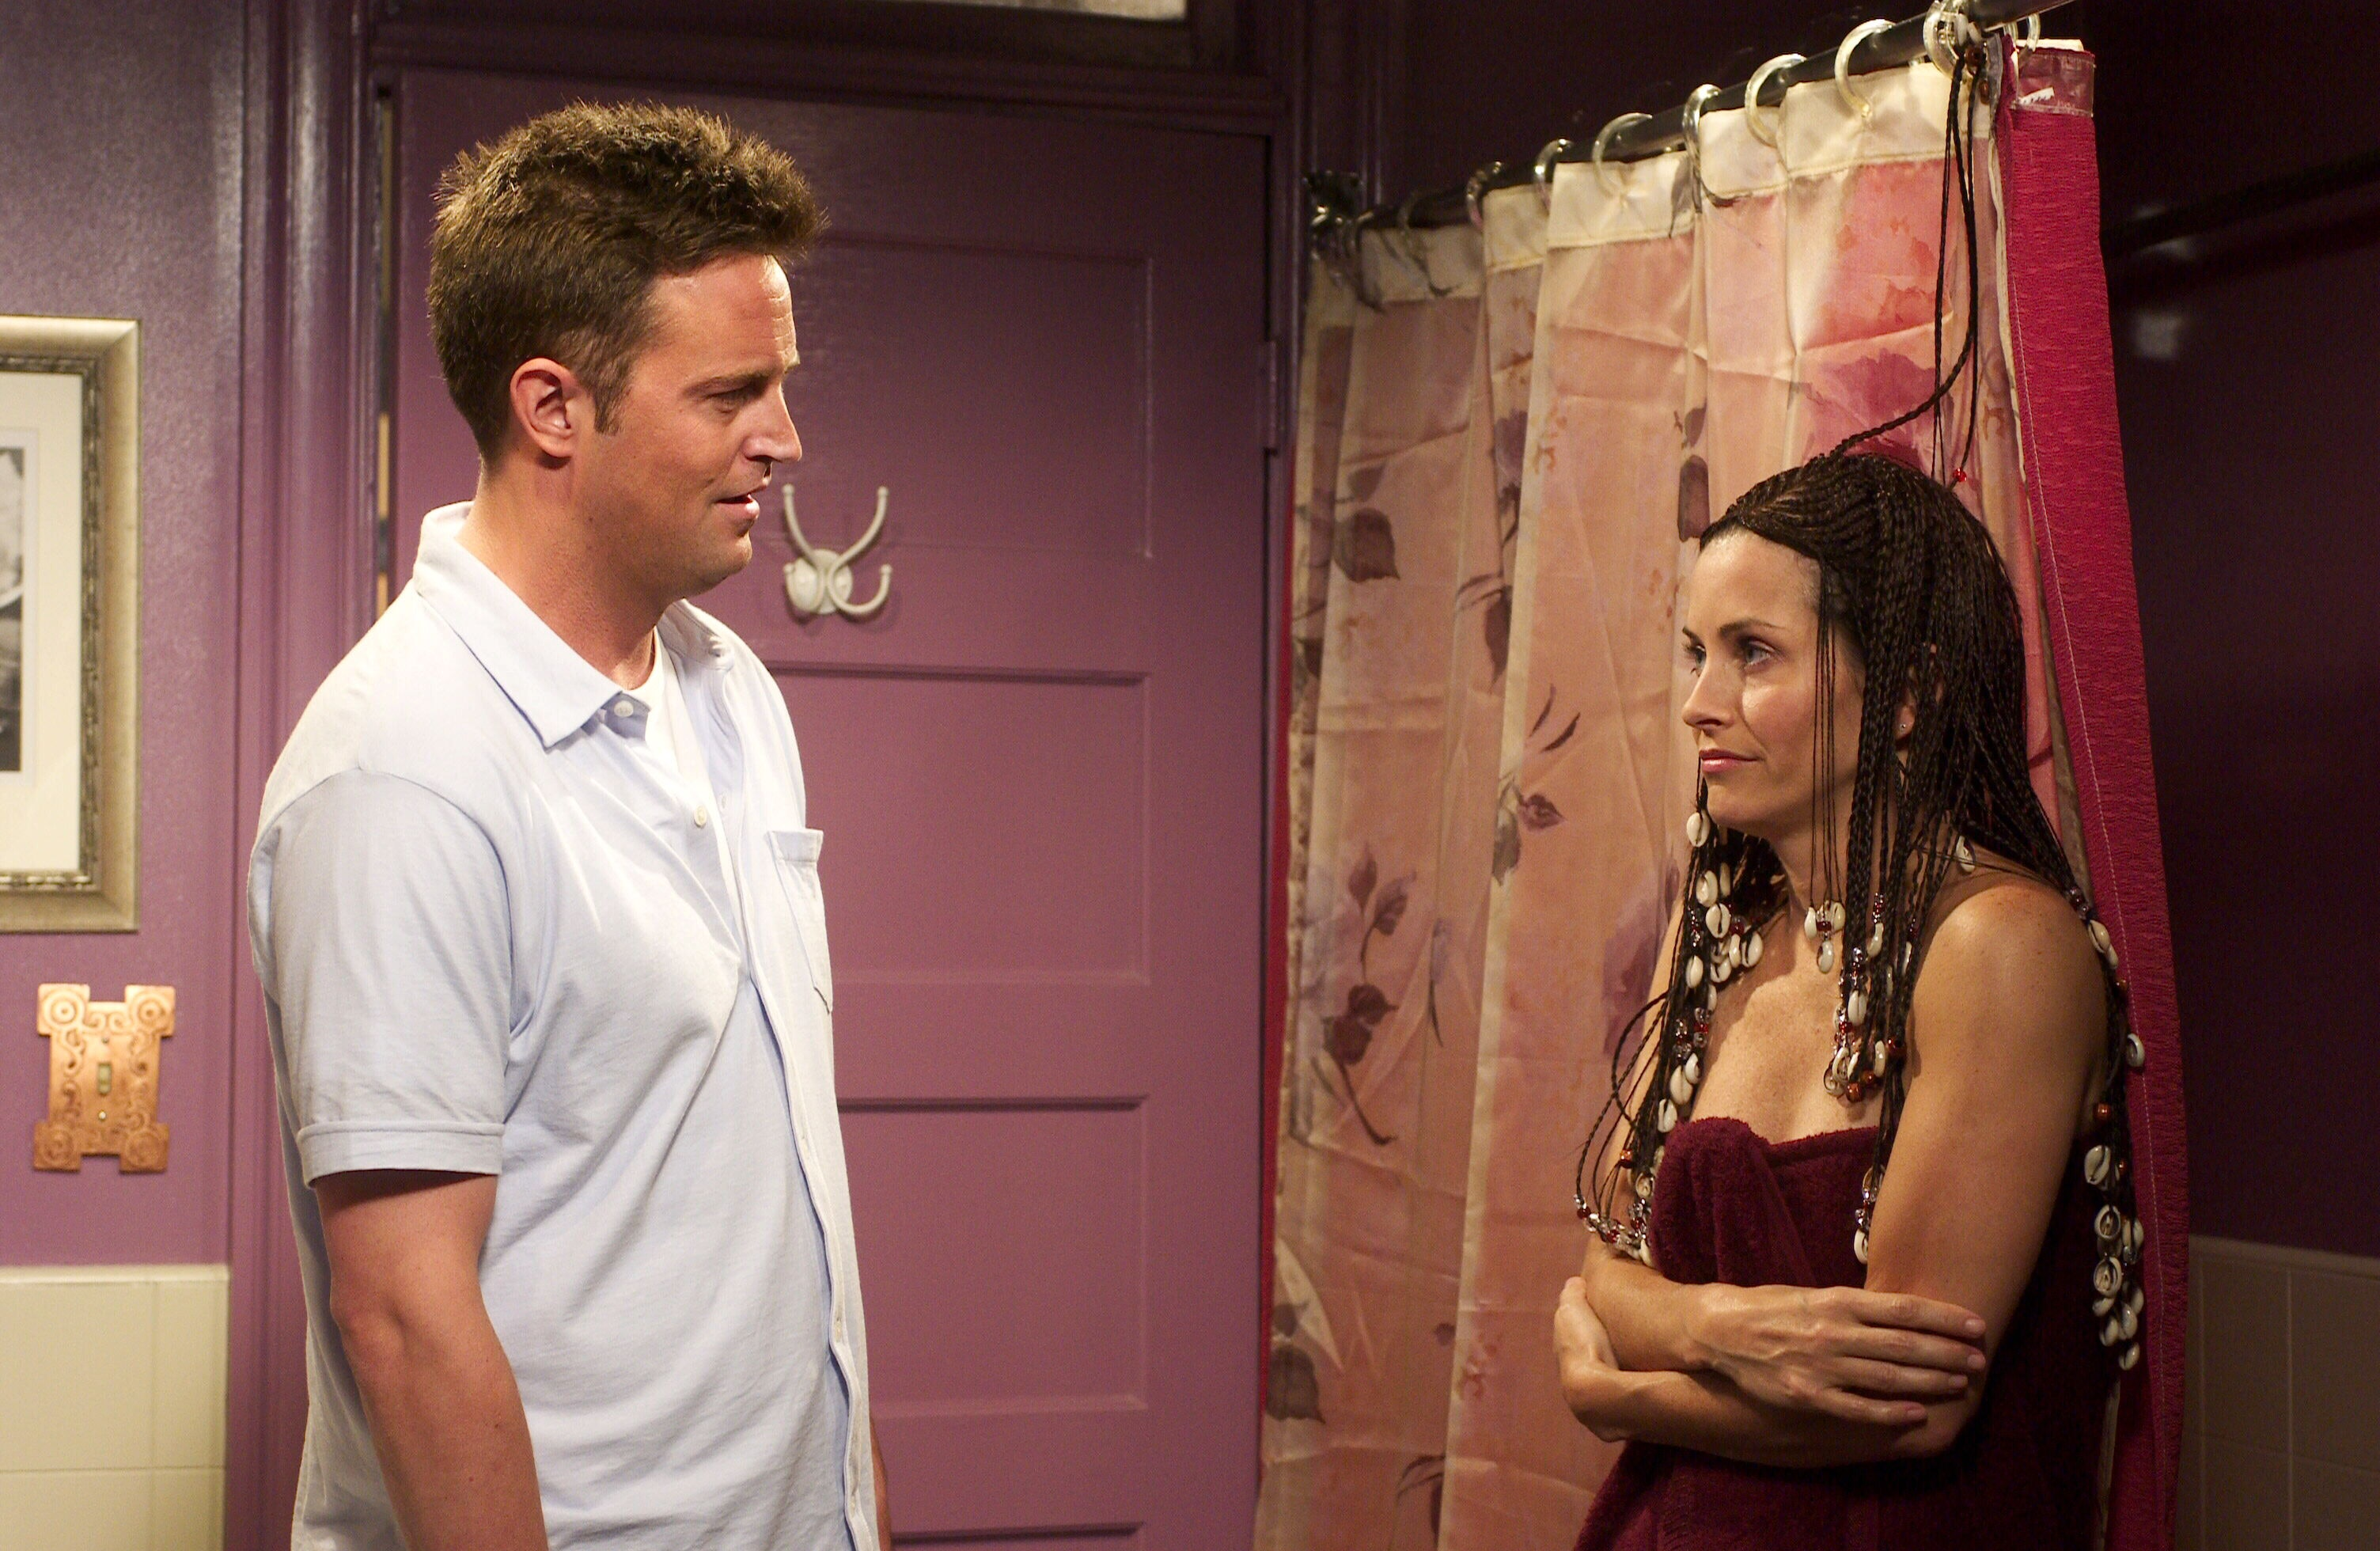 Who first found out that monica and chandler were dating